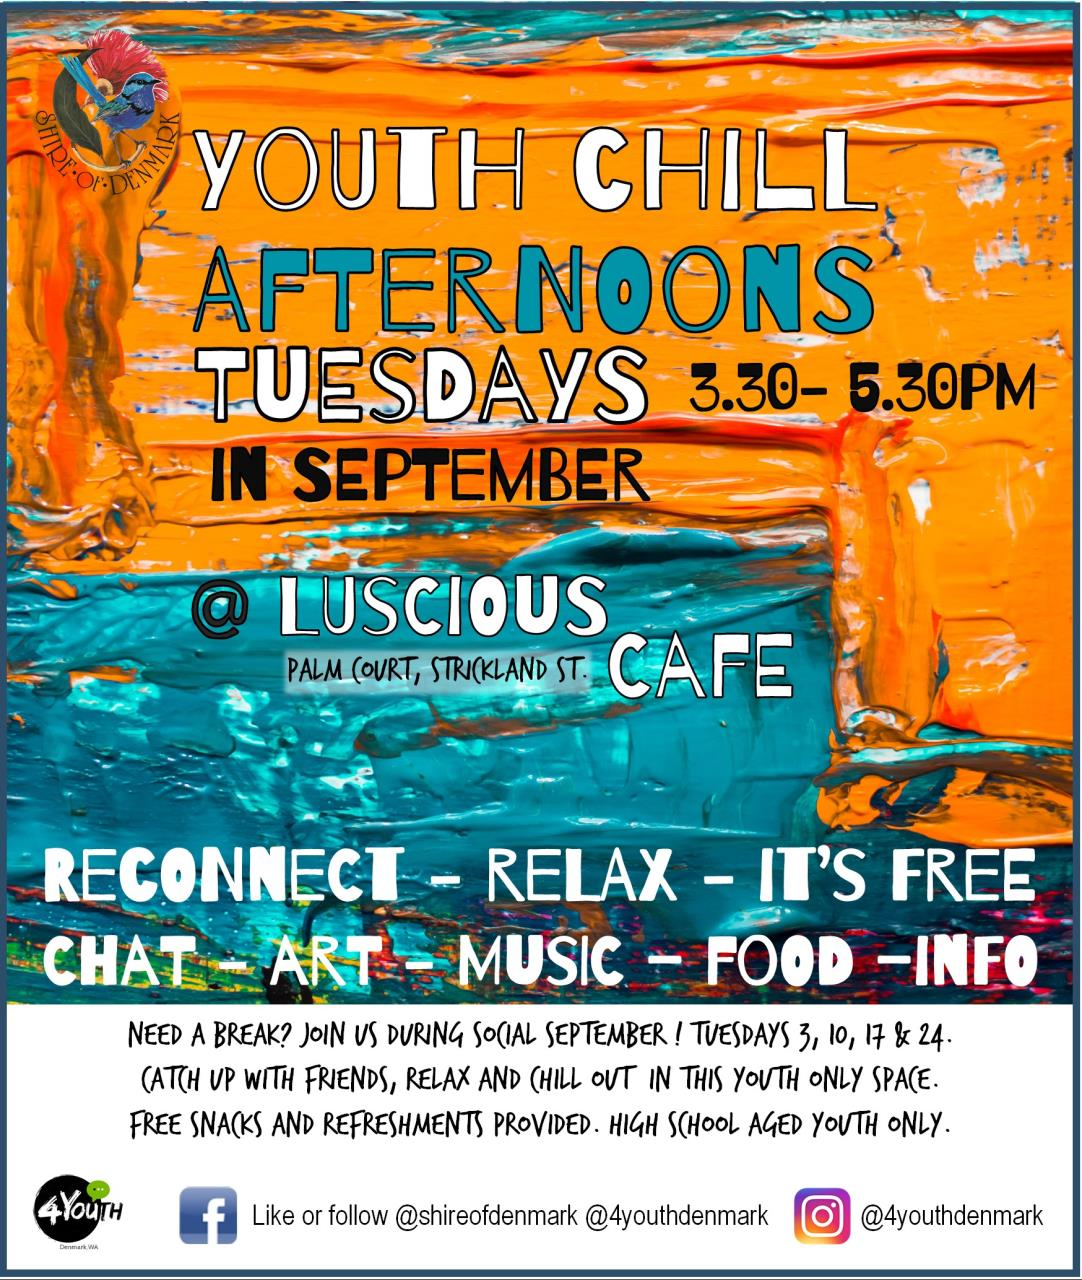 Youth Chill Afternoons - Tuesdays in September